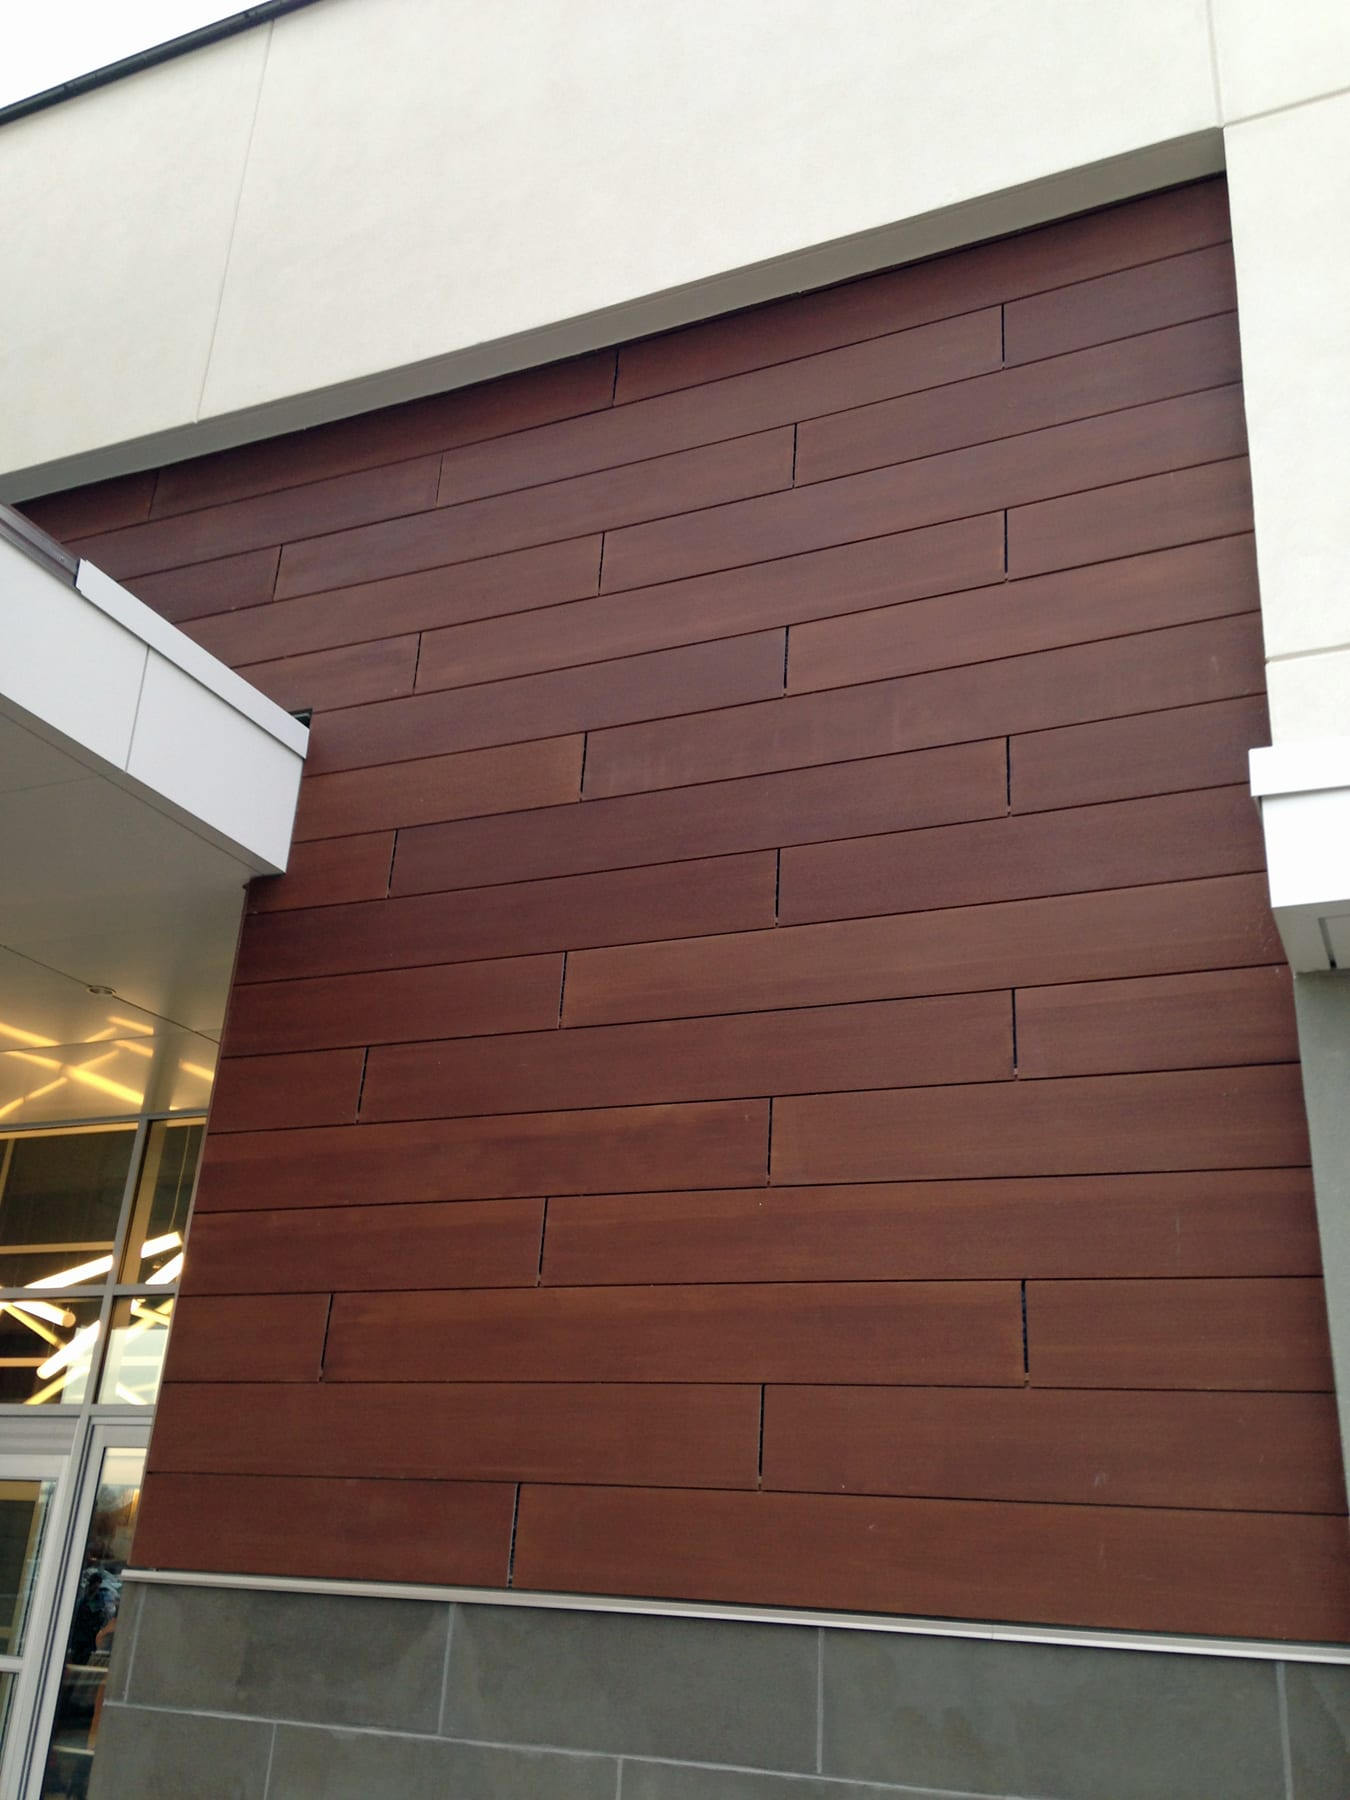 Resysta Wall Cladding : Resysta siding related keywords long tail